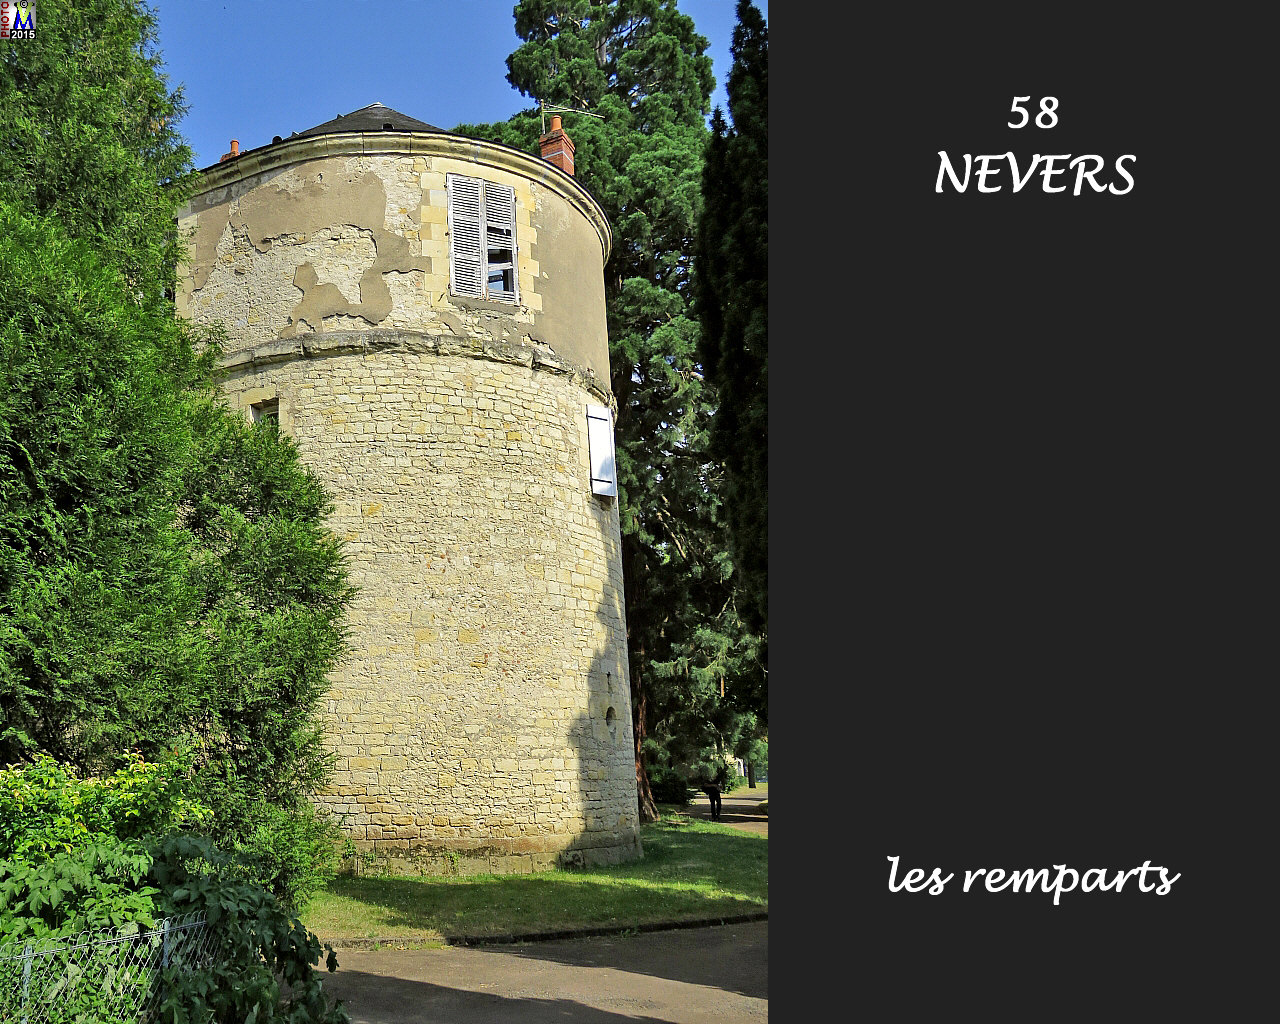 58NEVERS-remparts_102.jpg